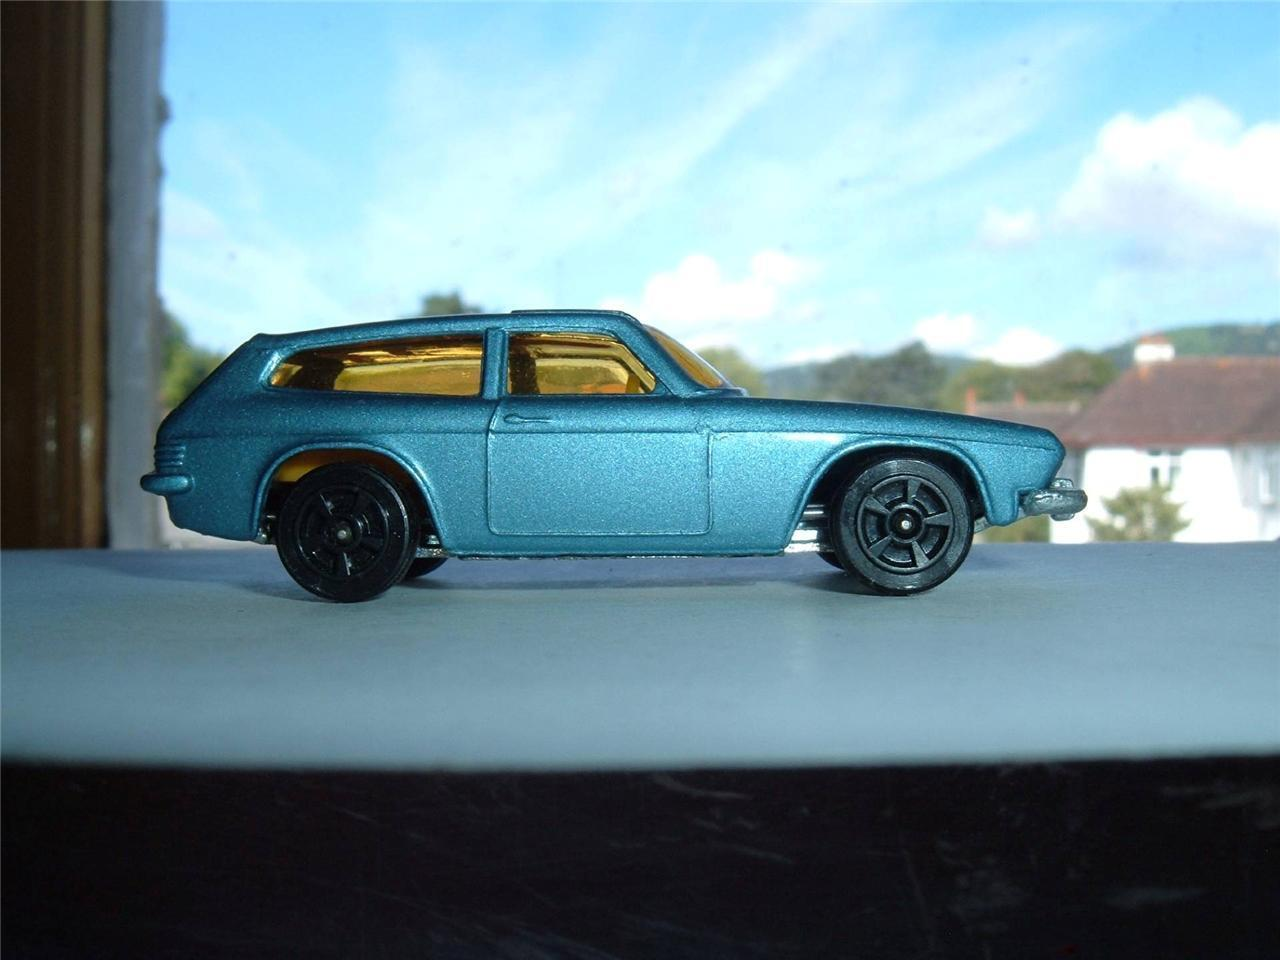 CORGI WHIZWHEELS OGLE RELIANT SCIMITAR IN NICE ORIGINAL CONDITION SEE THE PHOTOS